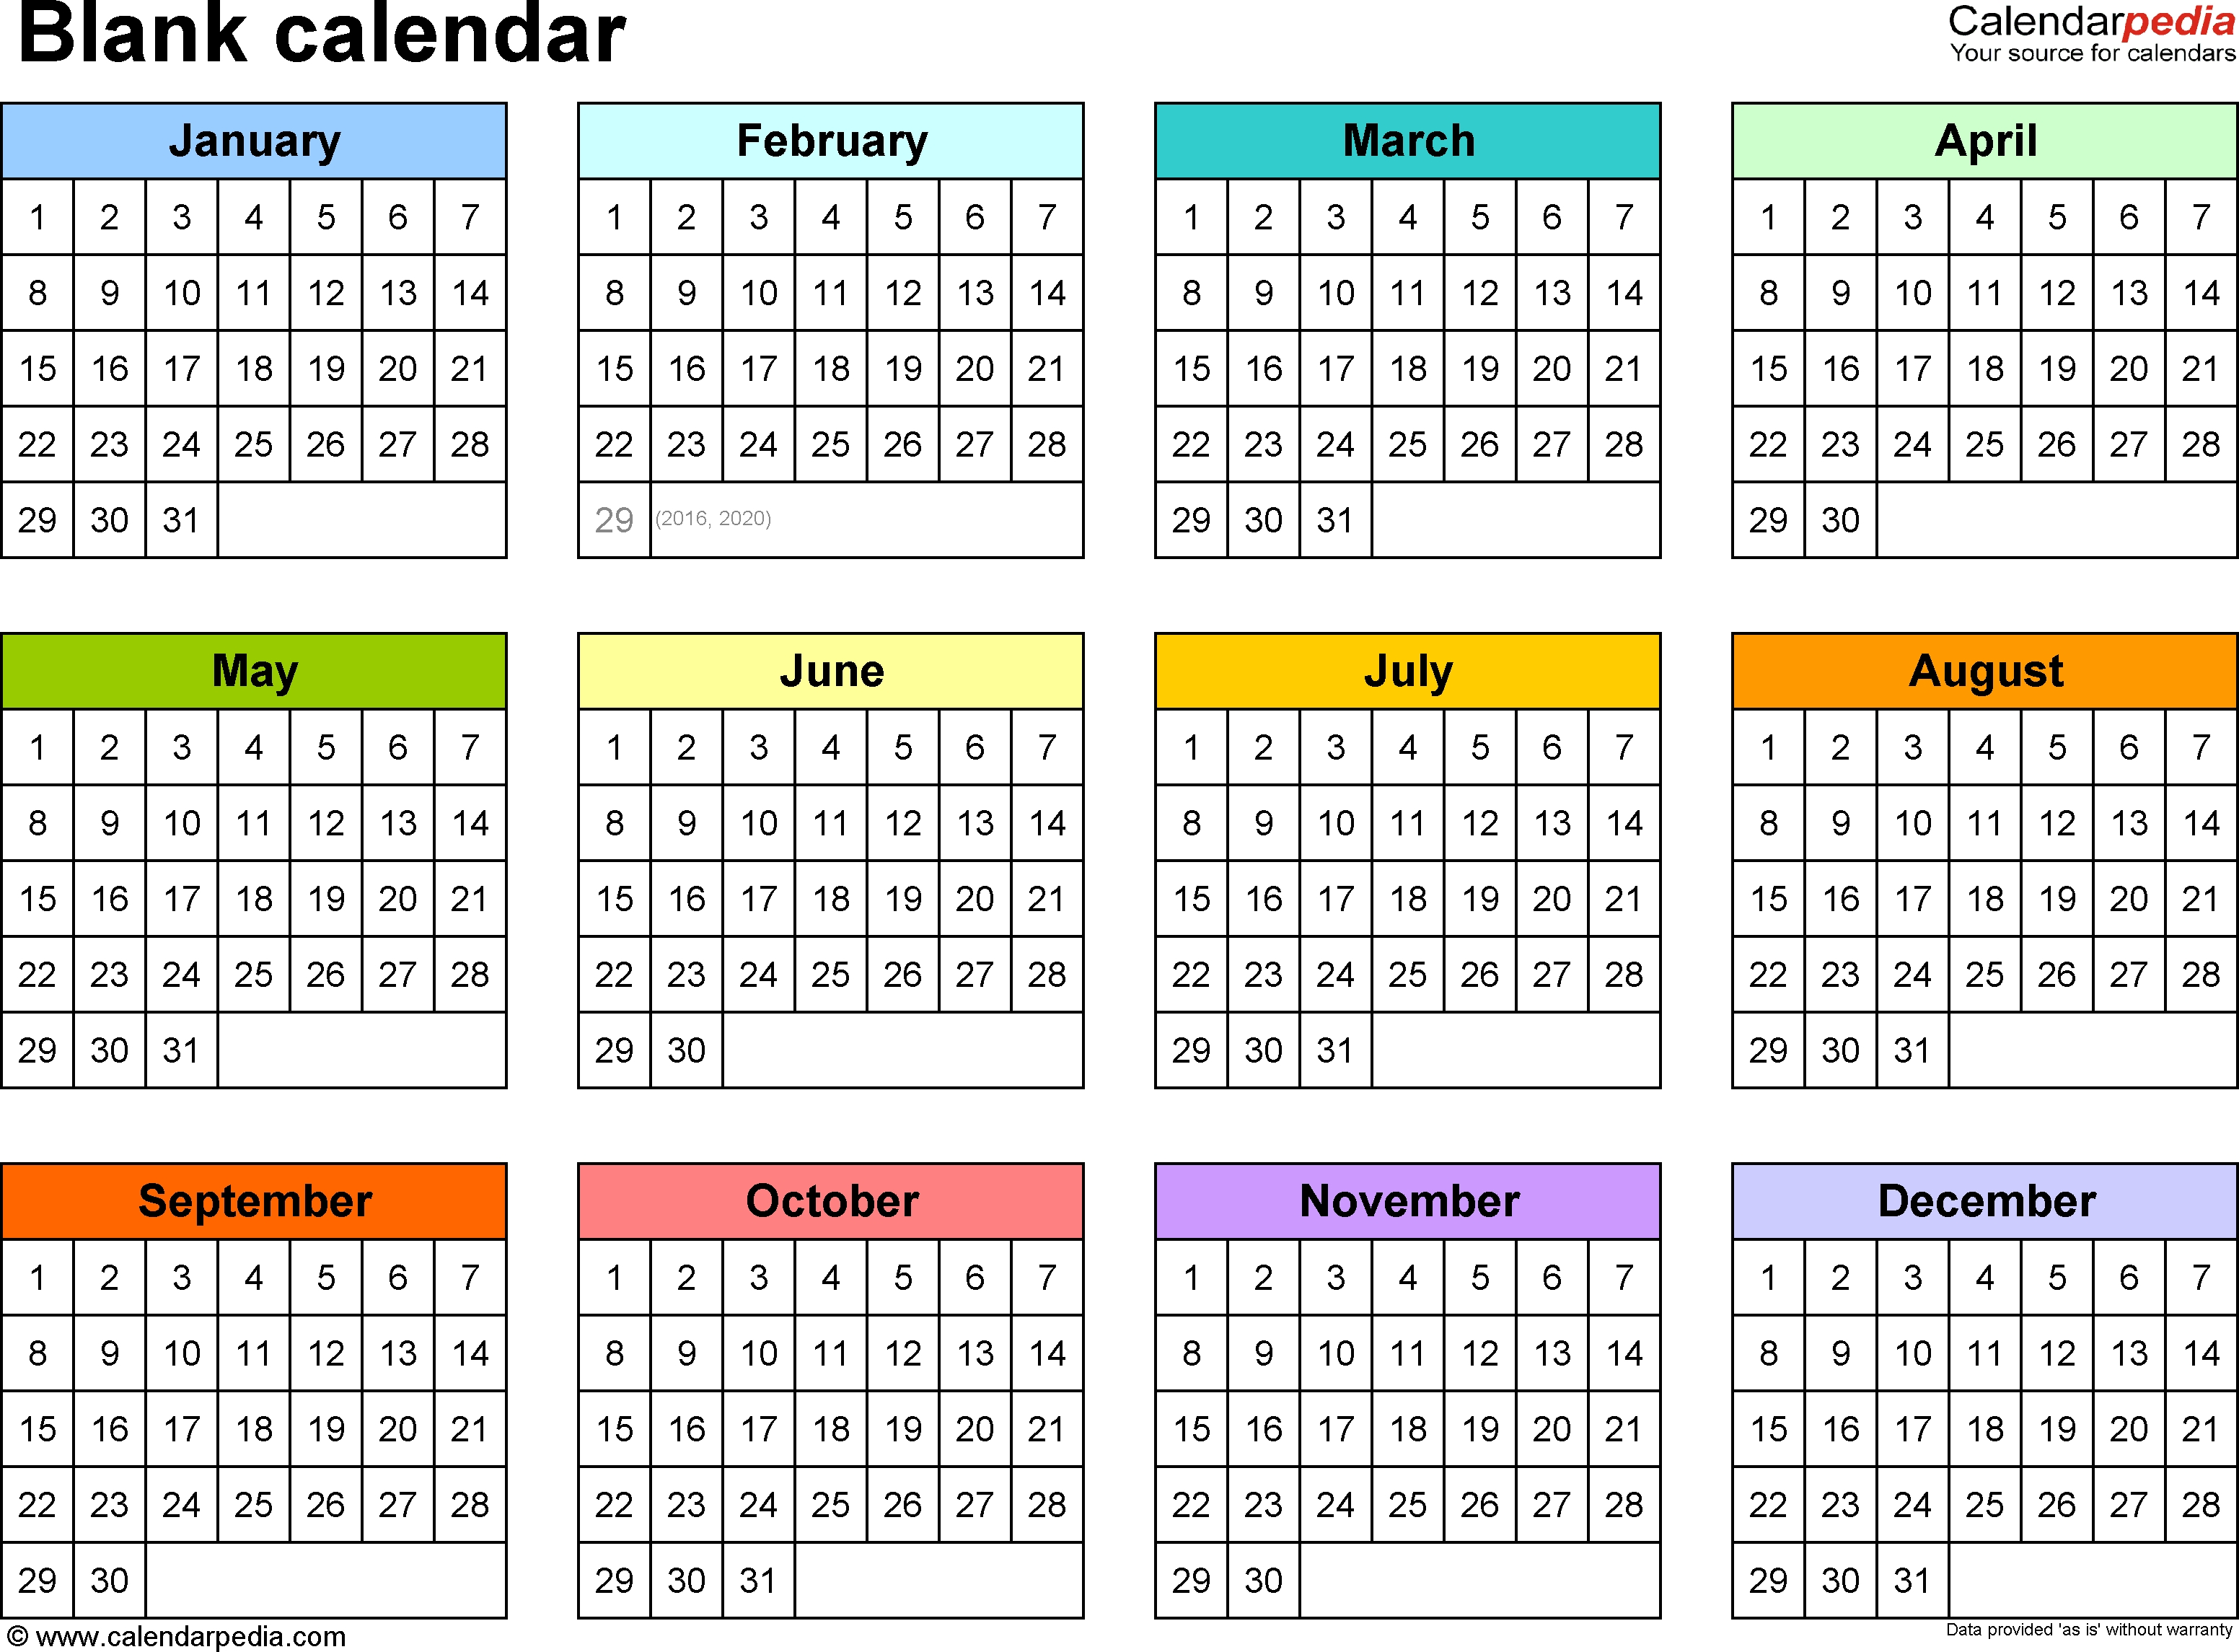 Blank Calendar - 9 Free Printable Microsoft Word Templates throughout Pdf Blank Calendar Without Months